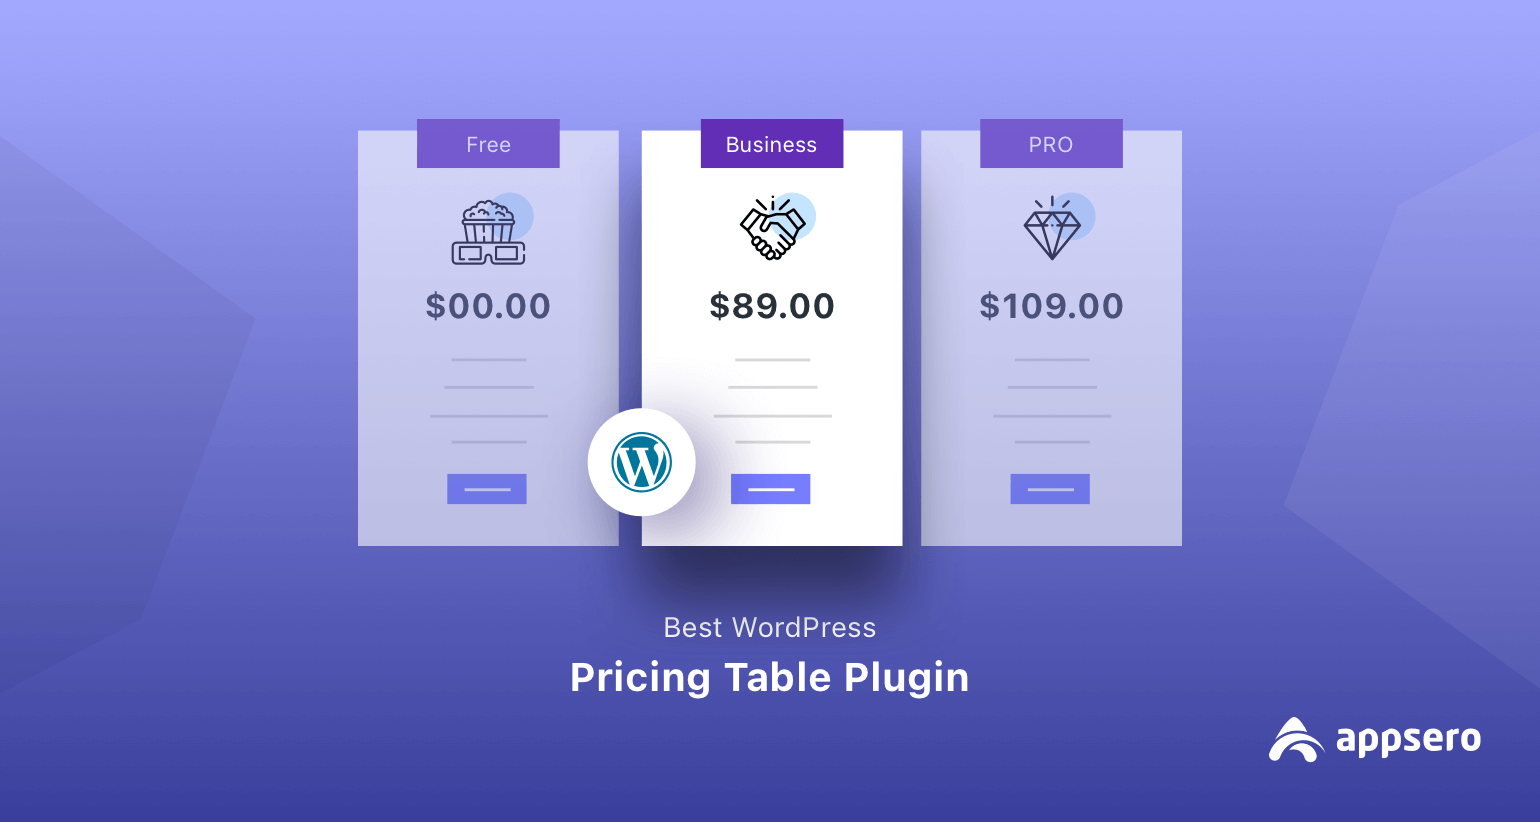 7 Best WordPress Pricing Table Plugin to Select in Late 2021